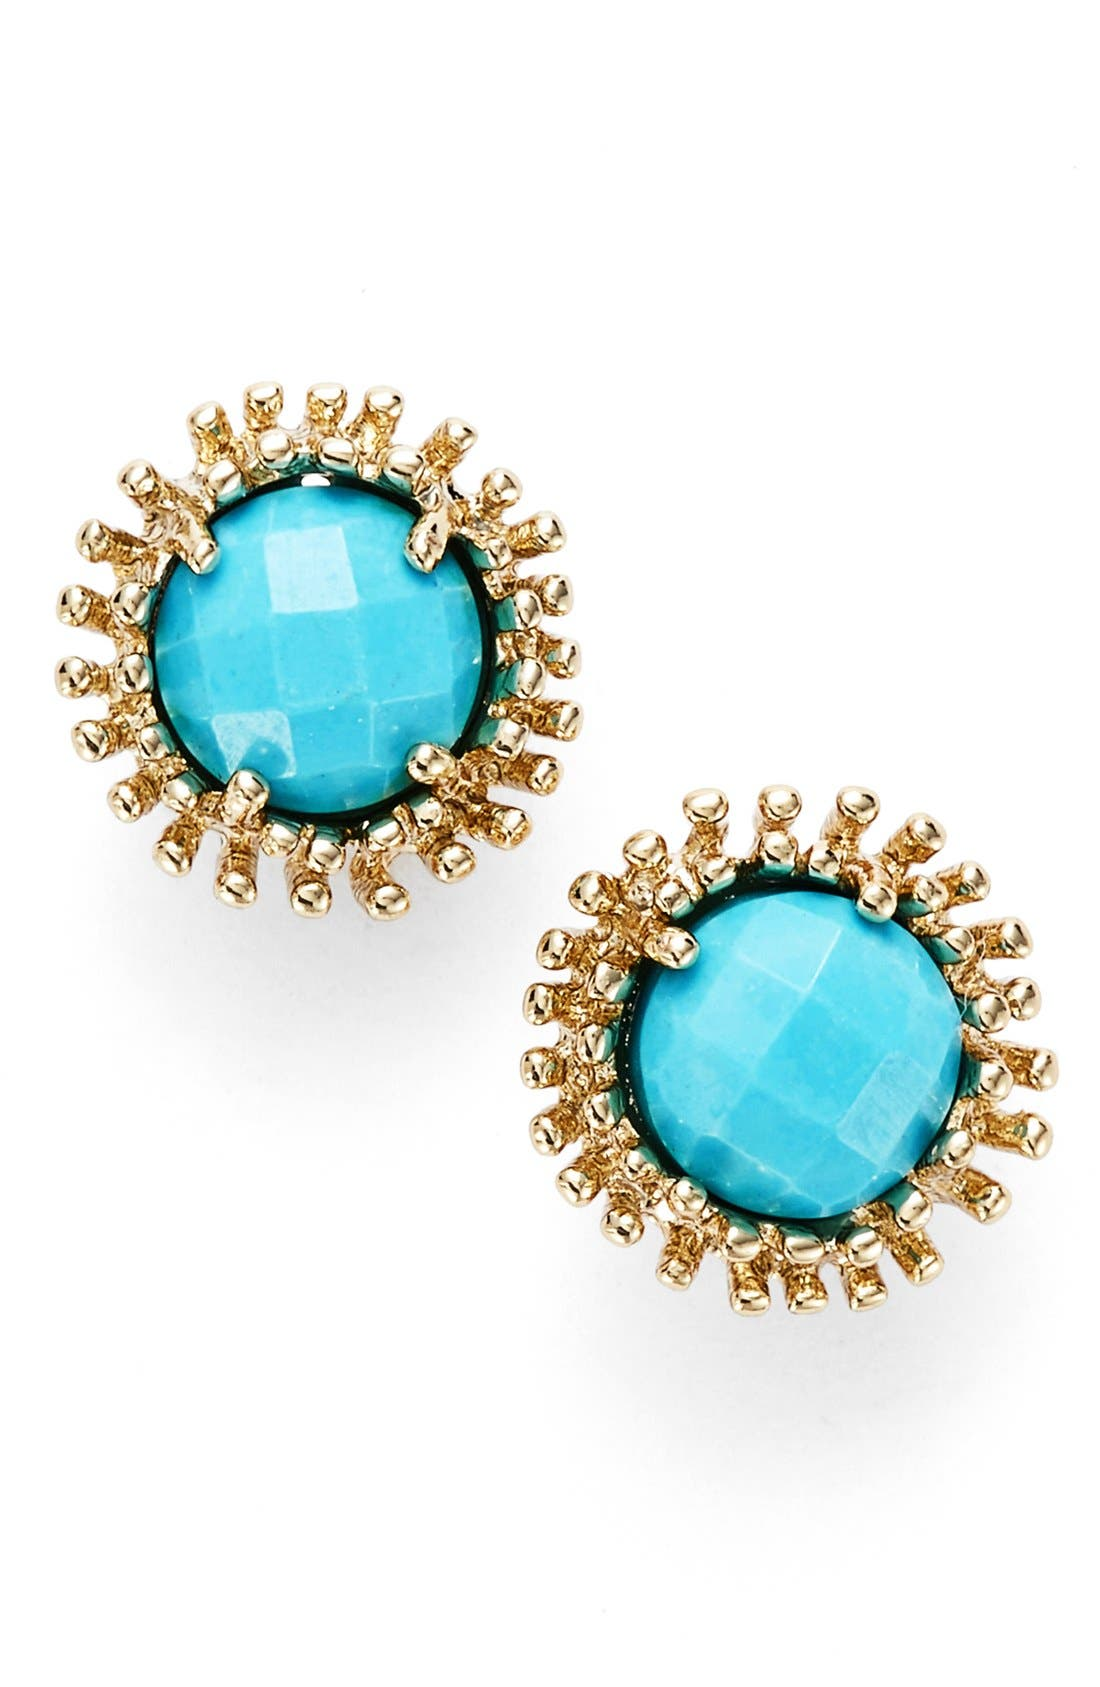 'Carly' Stud Earrings,                         Main,                         color, Turquoise